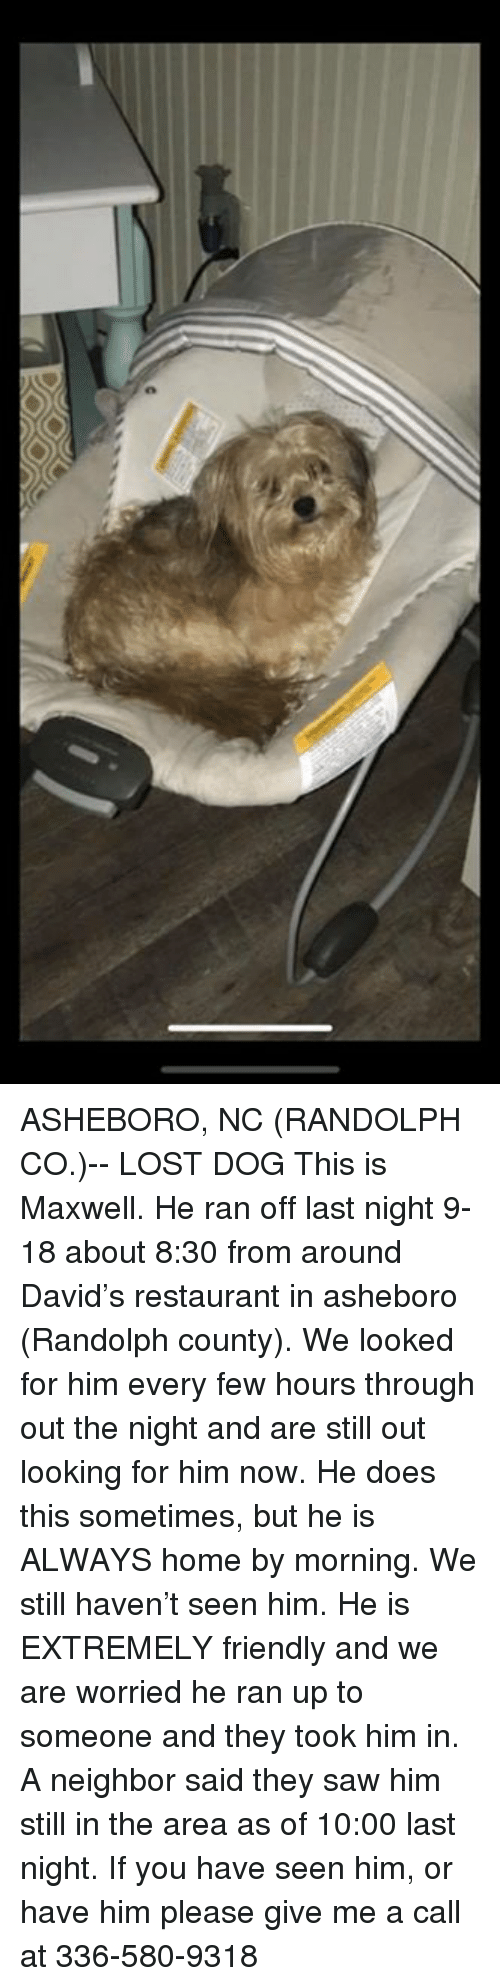 Memes, Saw, and Lost: ASHEBORO, NC (RANDOLPH CO.)-- LOST DOG  This is Maxwell. He ran off last night 9-18 about 8:30 from around David's restaurant in asheboro (Randolph county). We looked for him every few hours through out the night and are still out looking for him now. He does this sometimes, but he is ALWAYS home by morning. We still haven't seen him. He is EXTREMELY friendly and we are worried he ran up to someone and they took him in. A neighbor said they saw him still in the area as of 10:00 last night. If you have seen him, or have him please give me a call at 336-580-9318